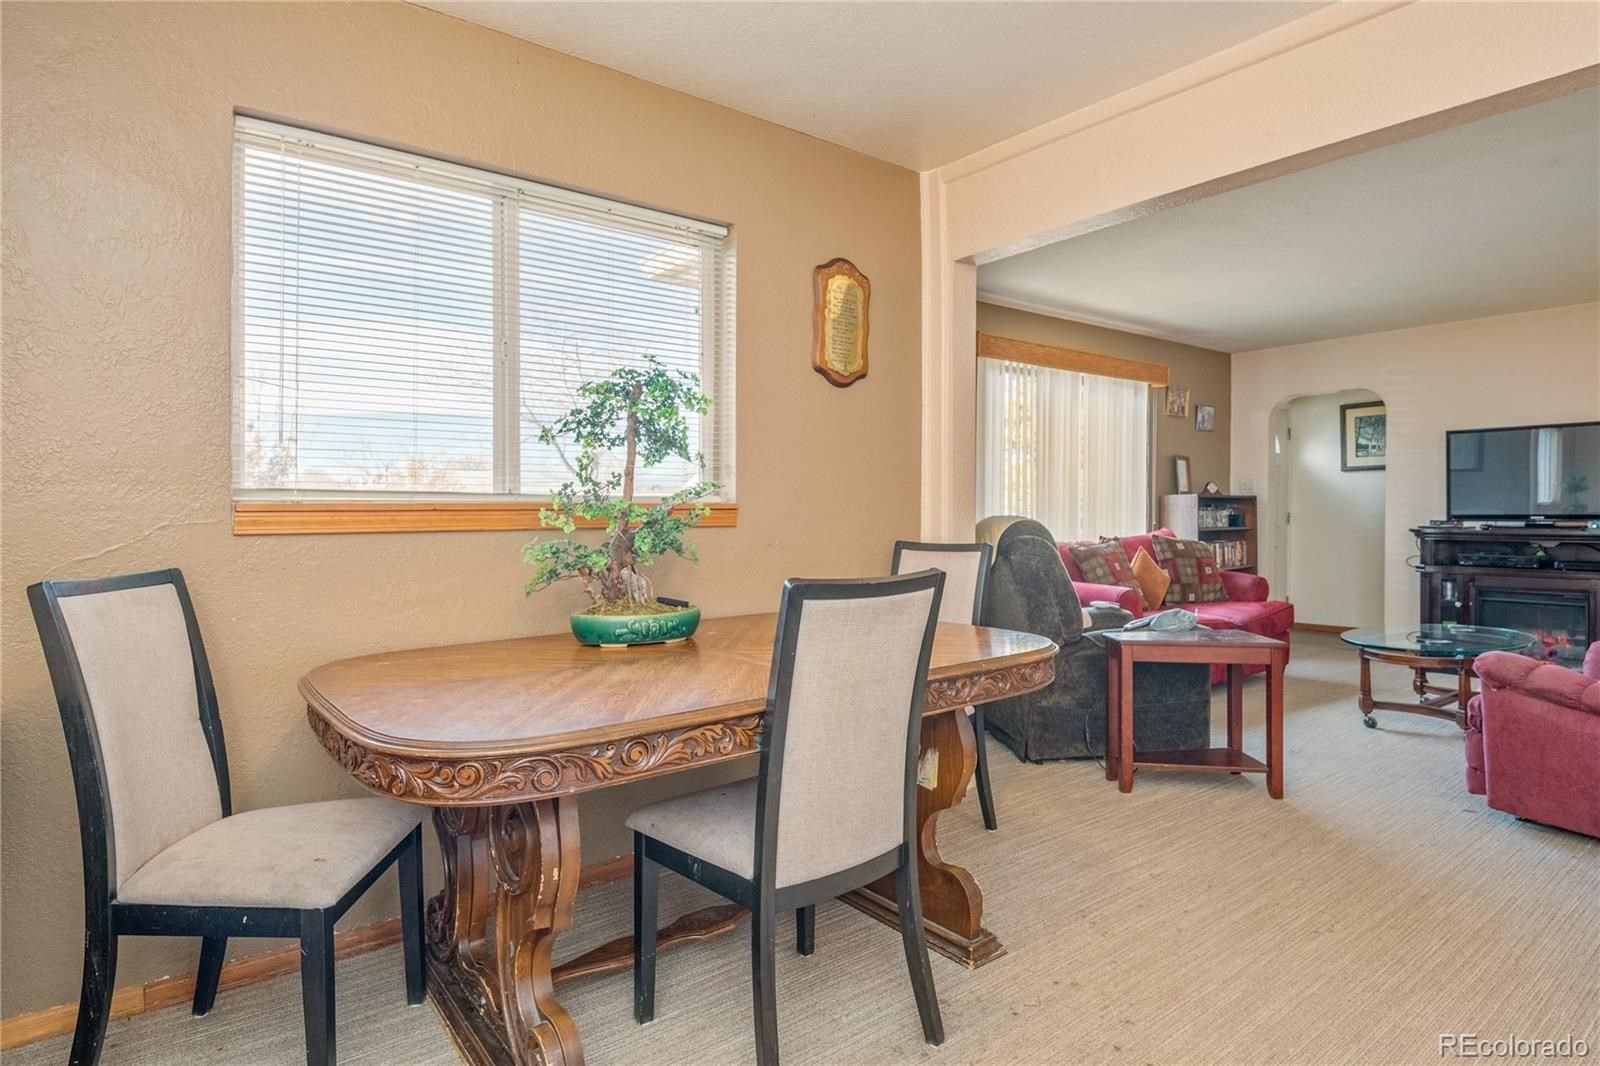 MLS# 4674292 - 4 - 8980 Hickory Place, Thornton, CO 80229